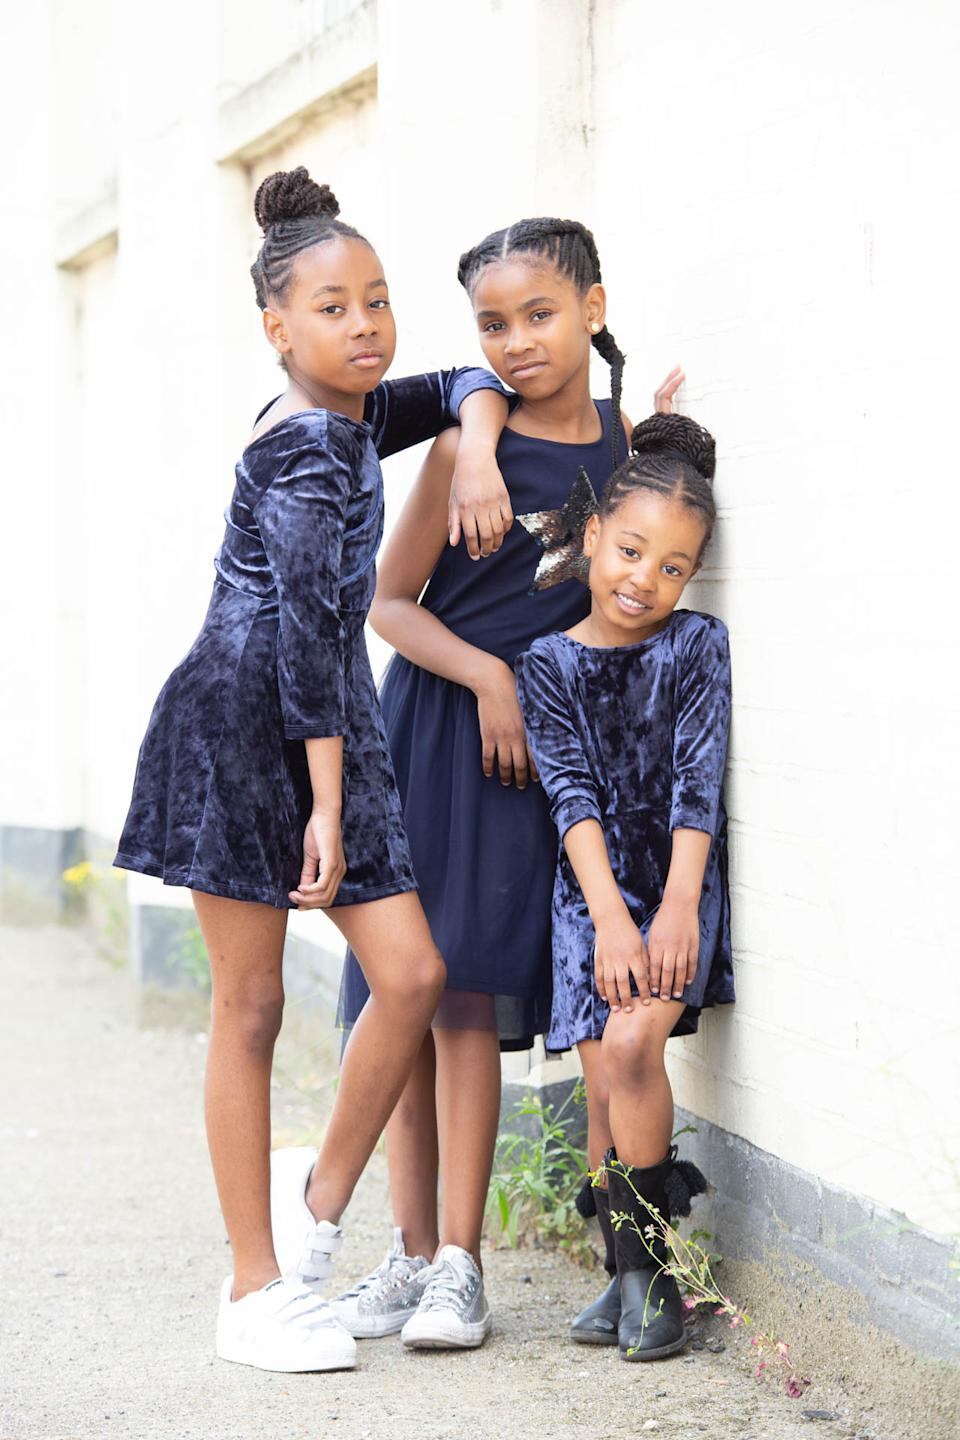 Their daughters were the inspiration behind the launch [Photo: March Muses]